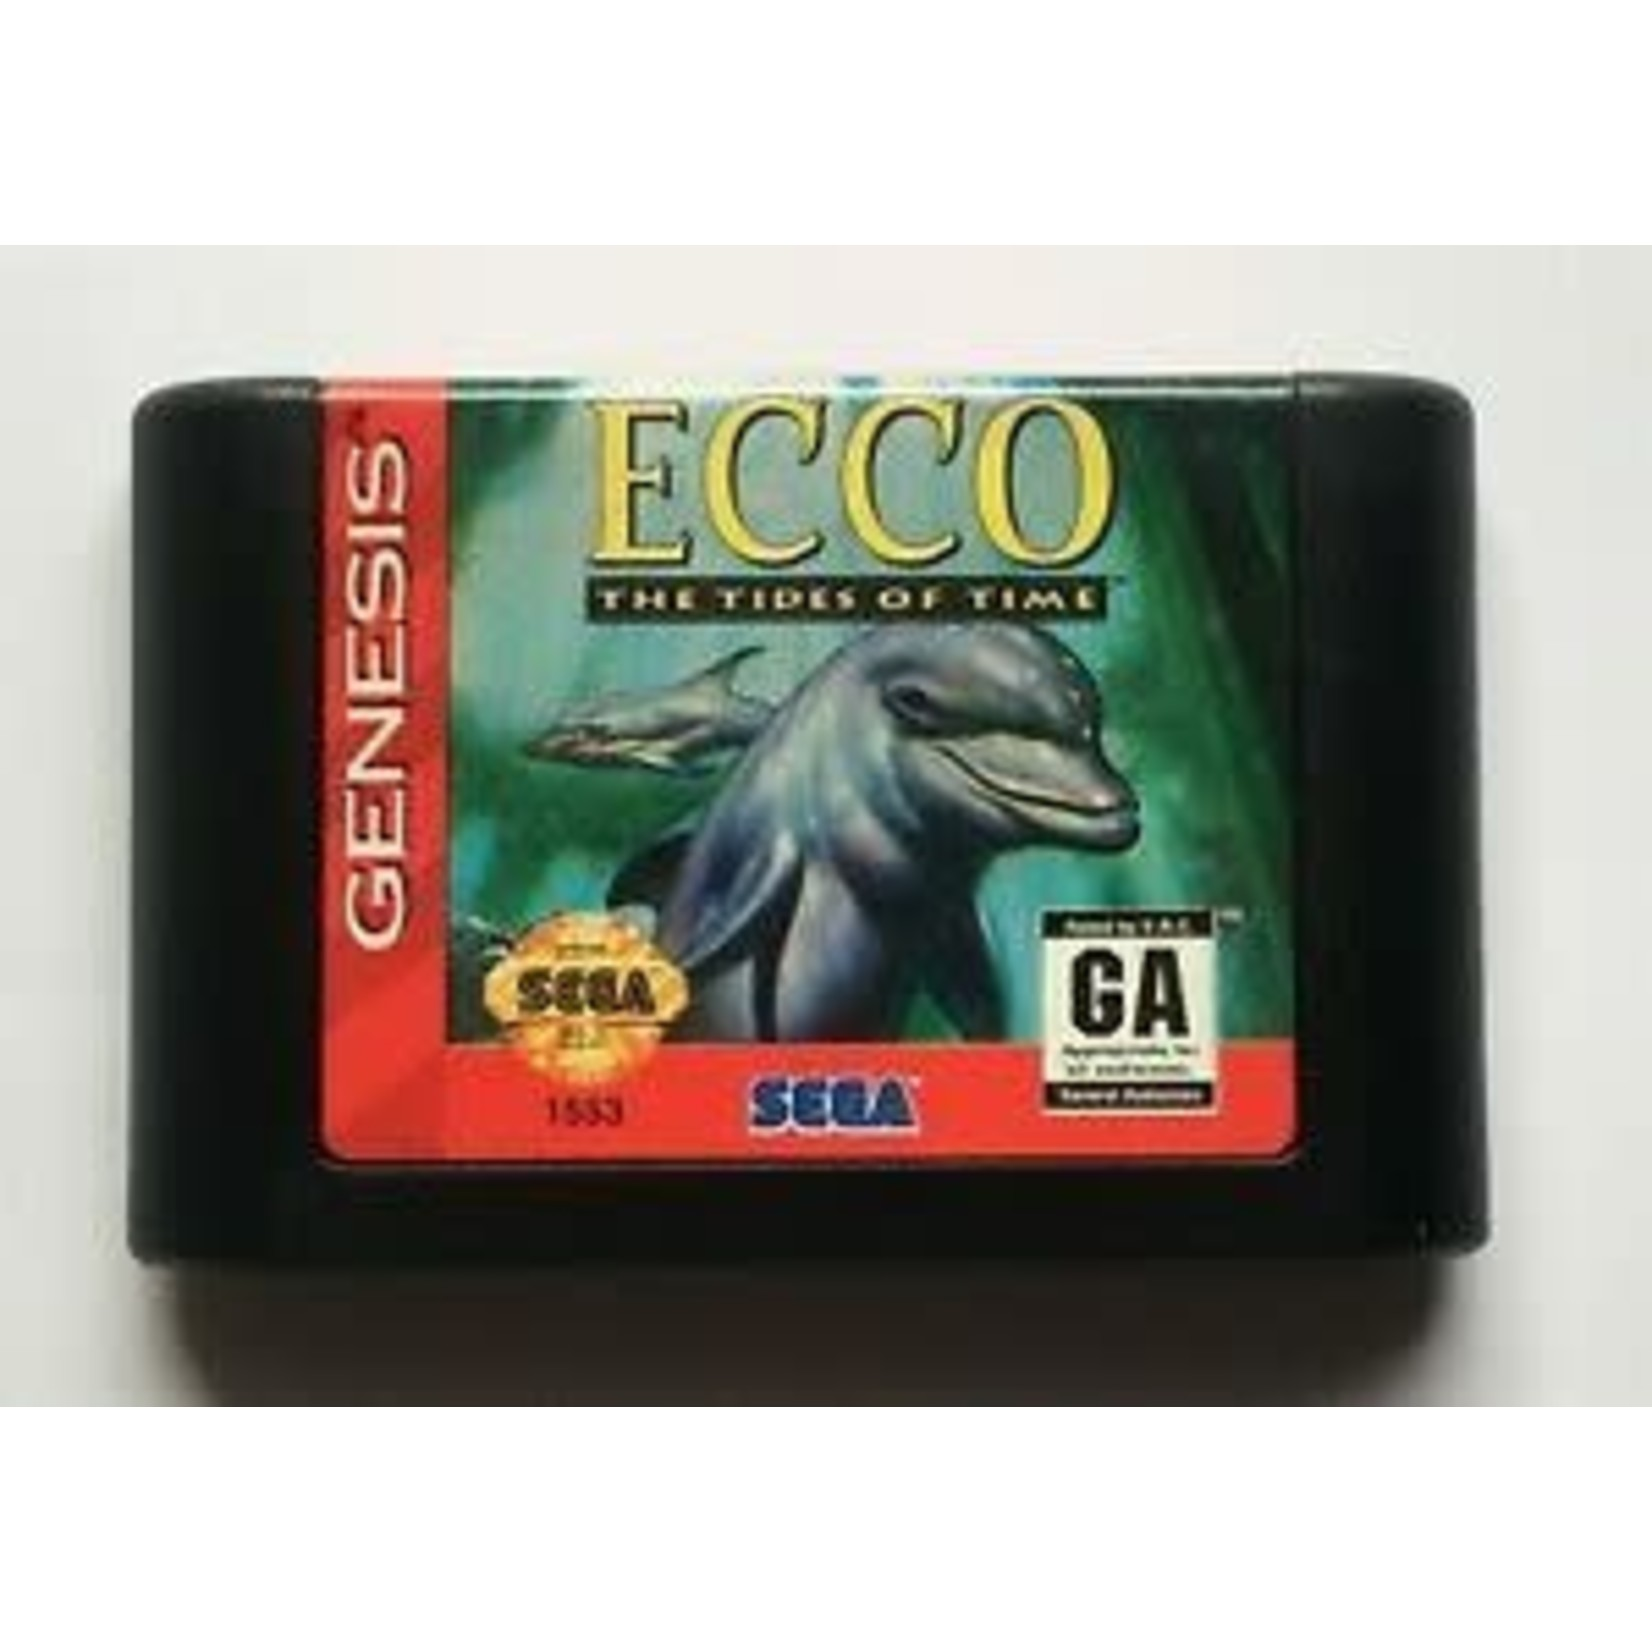 SGU-Ecco The Tides Of Time (Cartridge Only)